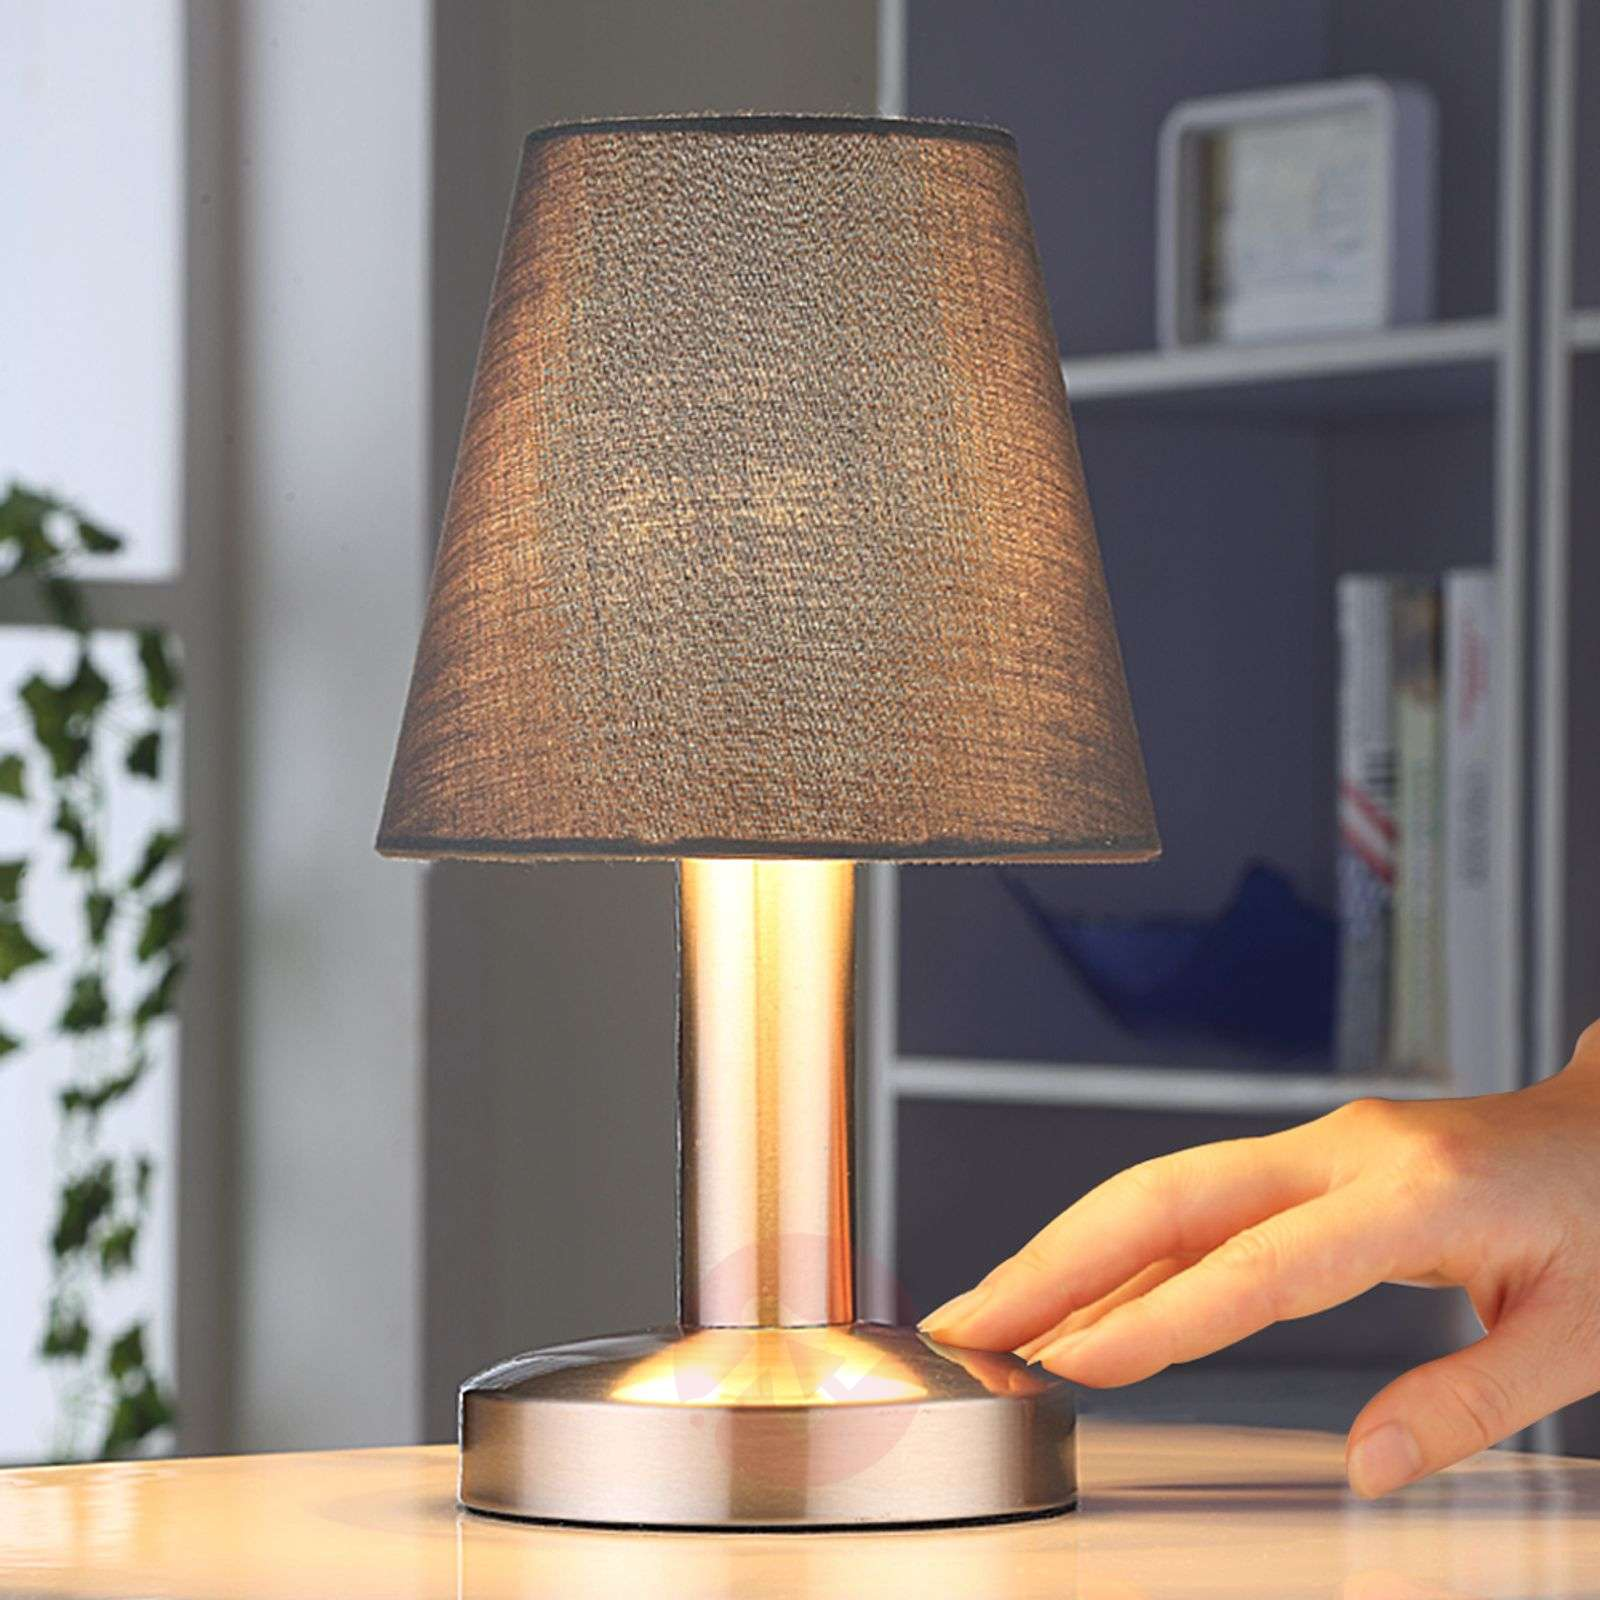 Grey bedside table lamp Hanno, fabric lampshade-9620811-01